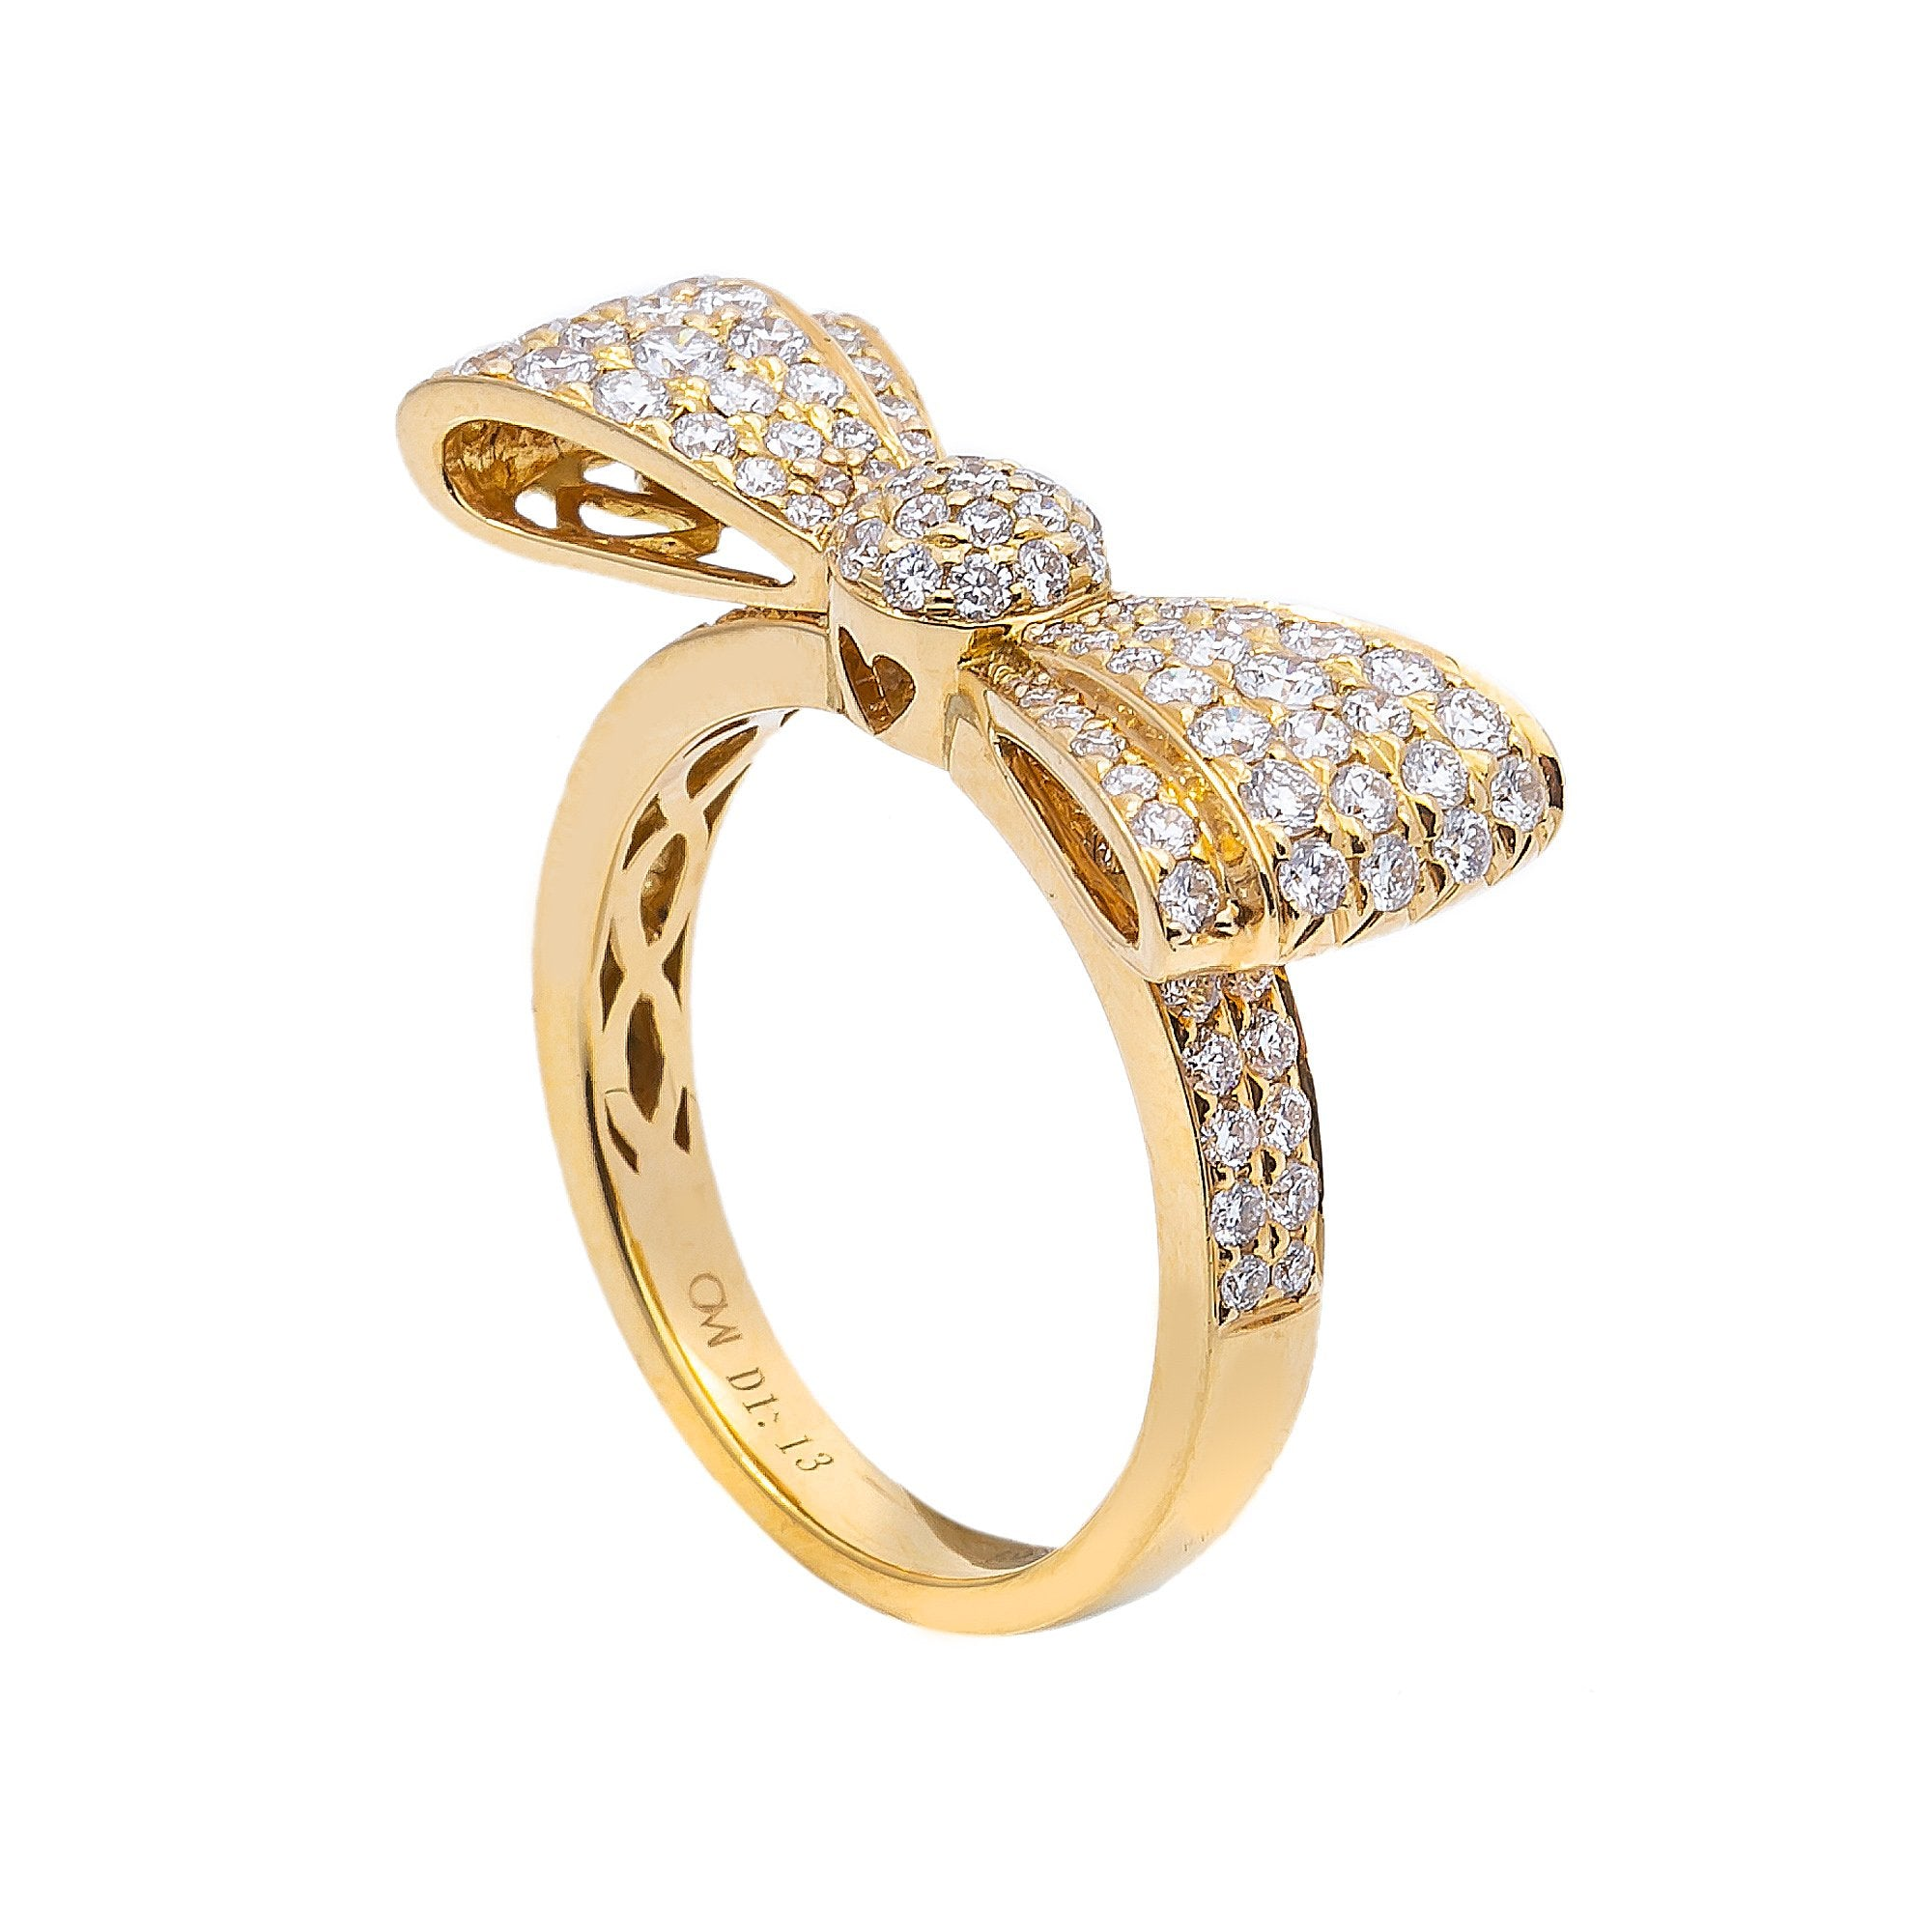 Ladies 18k Yellow Gold with 1.13 CT Right Hand Ring